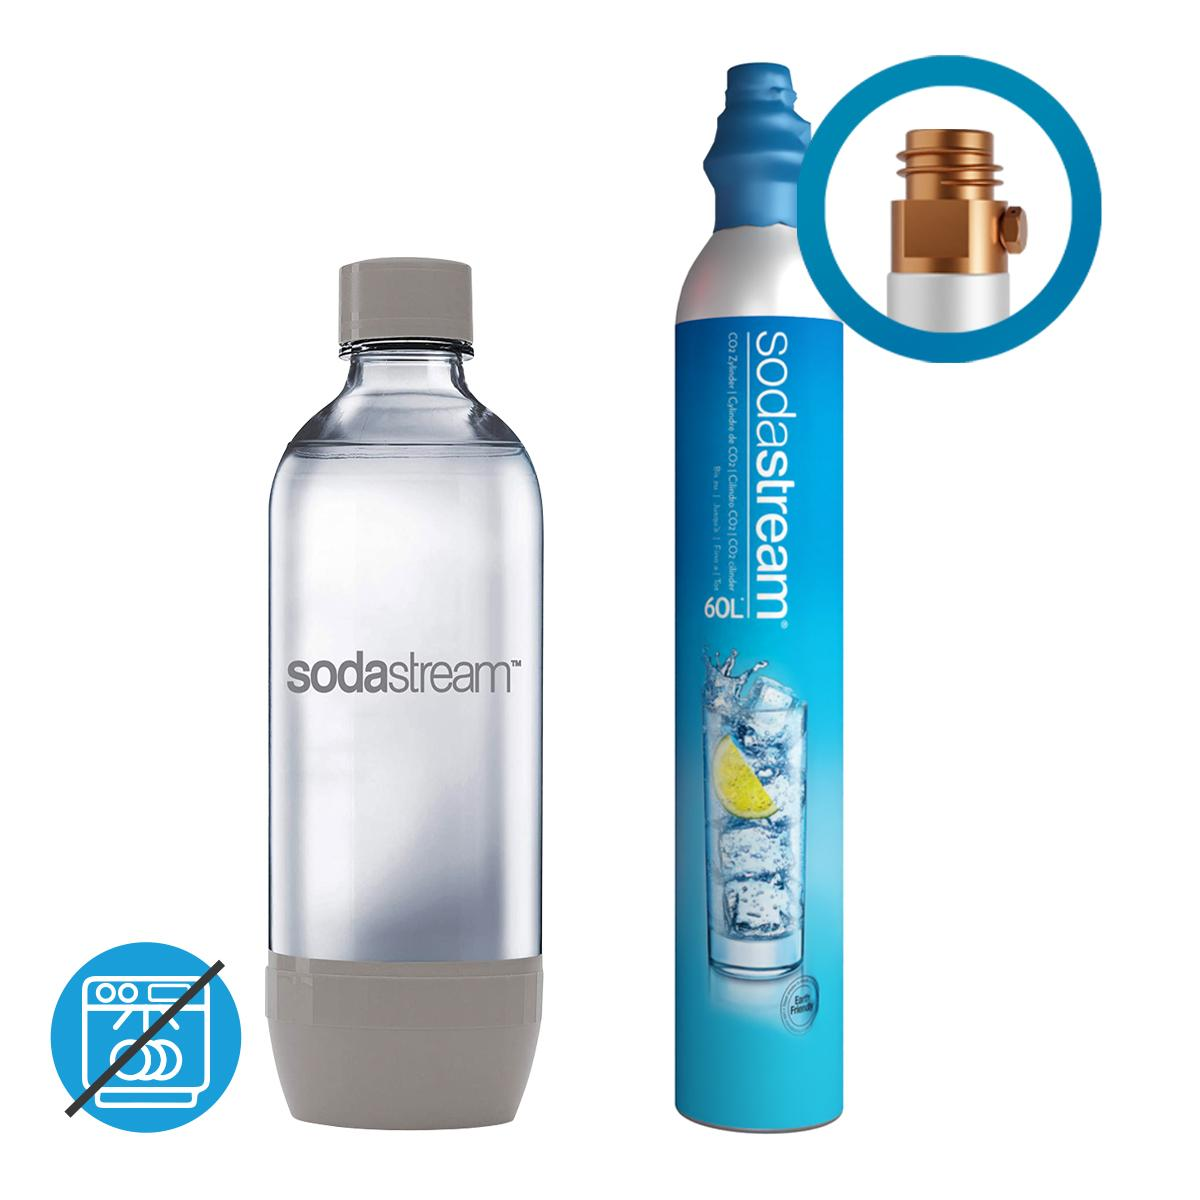 SodaStream - CO2 cilinder / Flessen - \